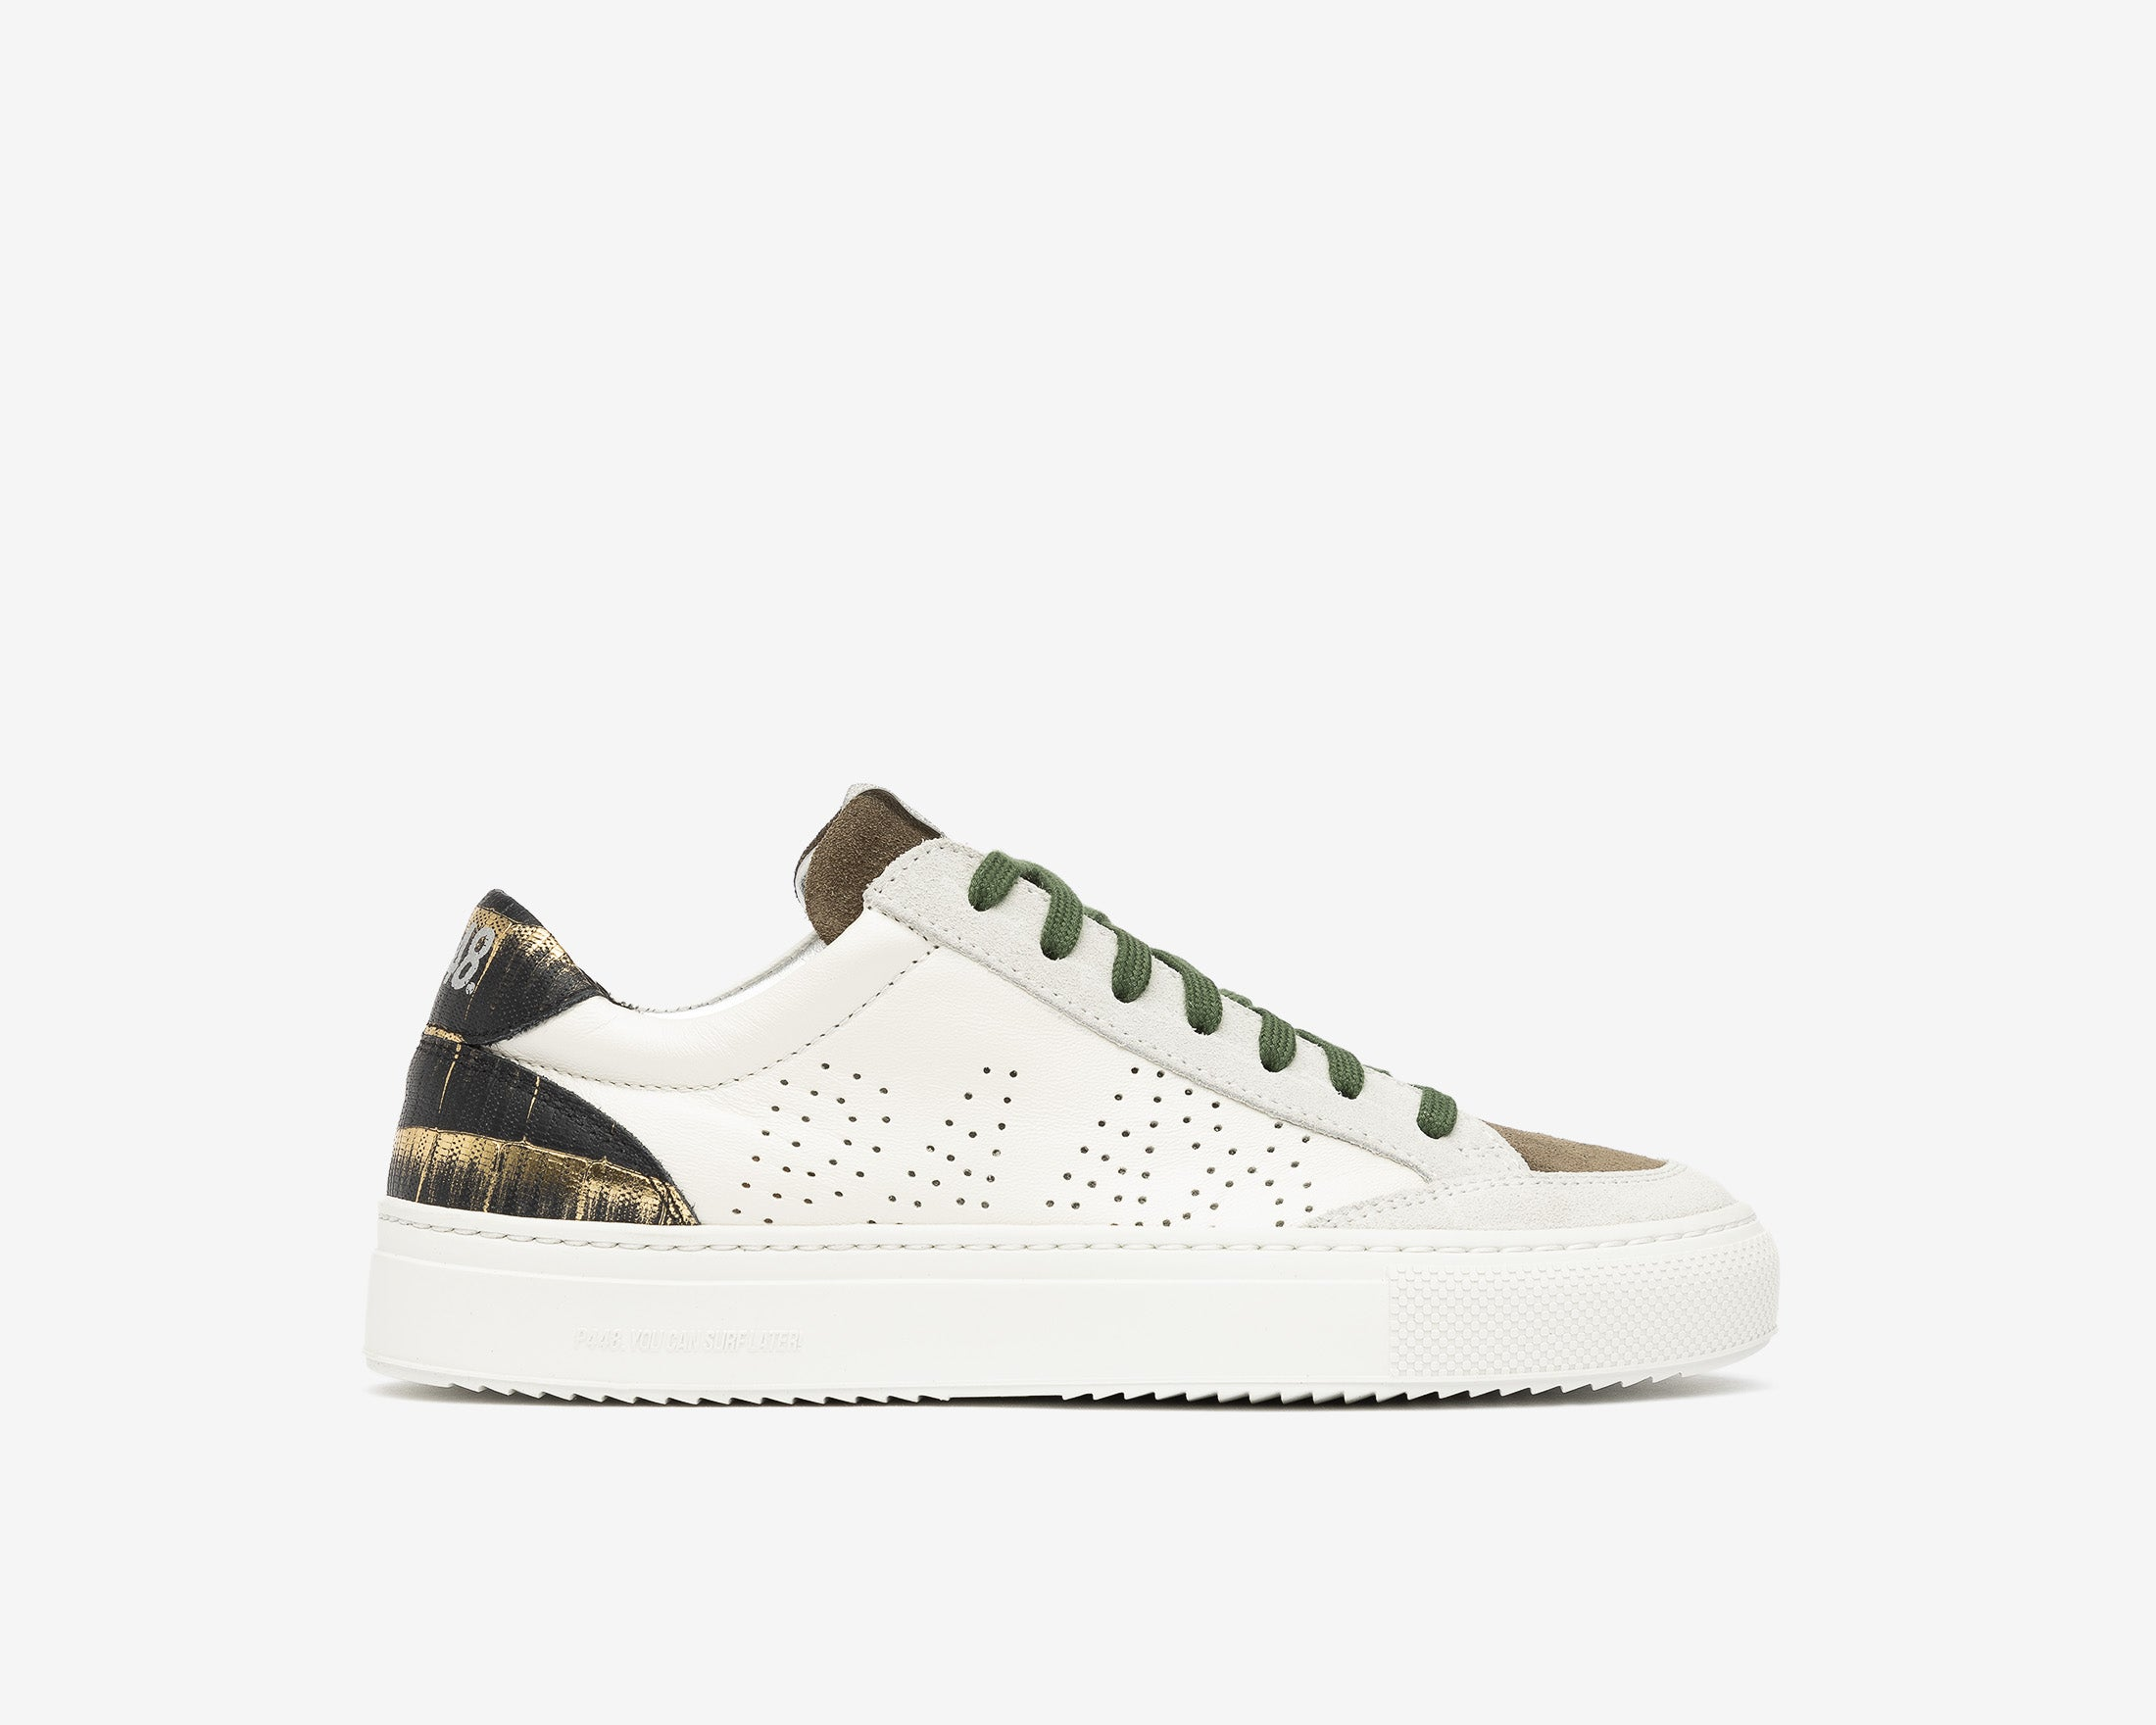 Soho Pull-on Sneaker in Clarm - Profile